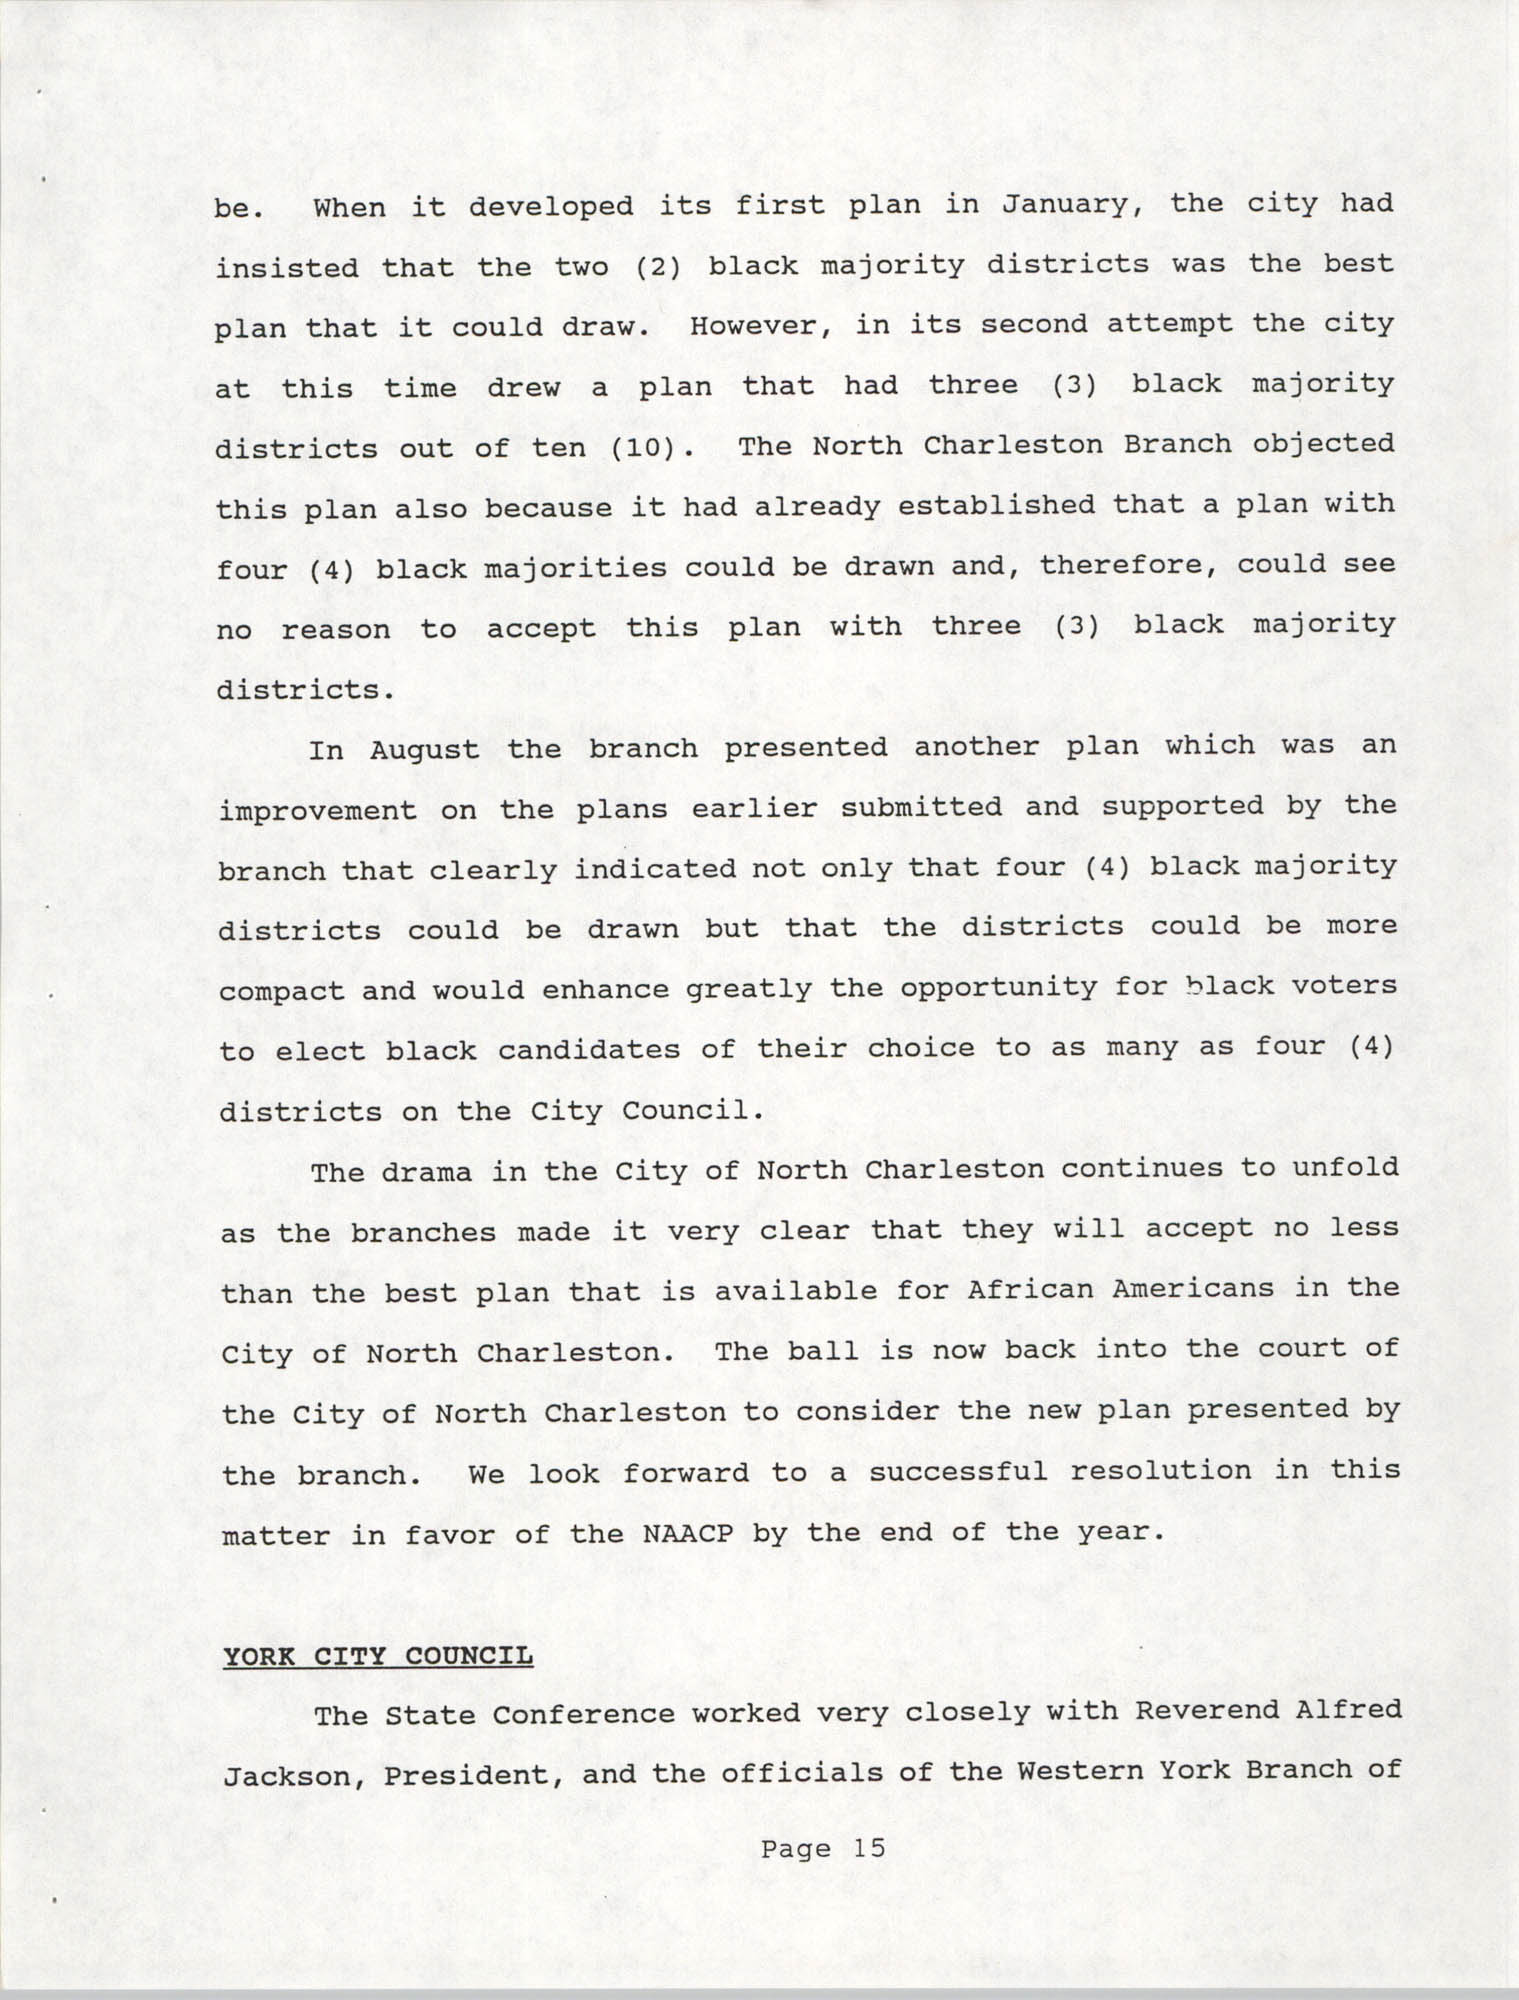 South Carolina Conference of Branches of the NAACP, 1990 Annual Report, Part One, Page 15